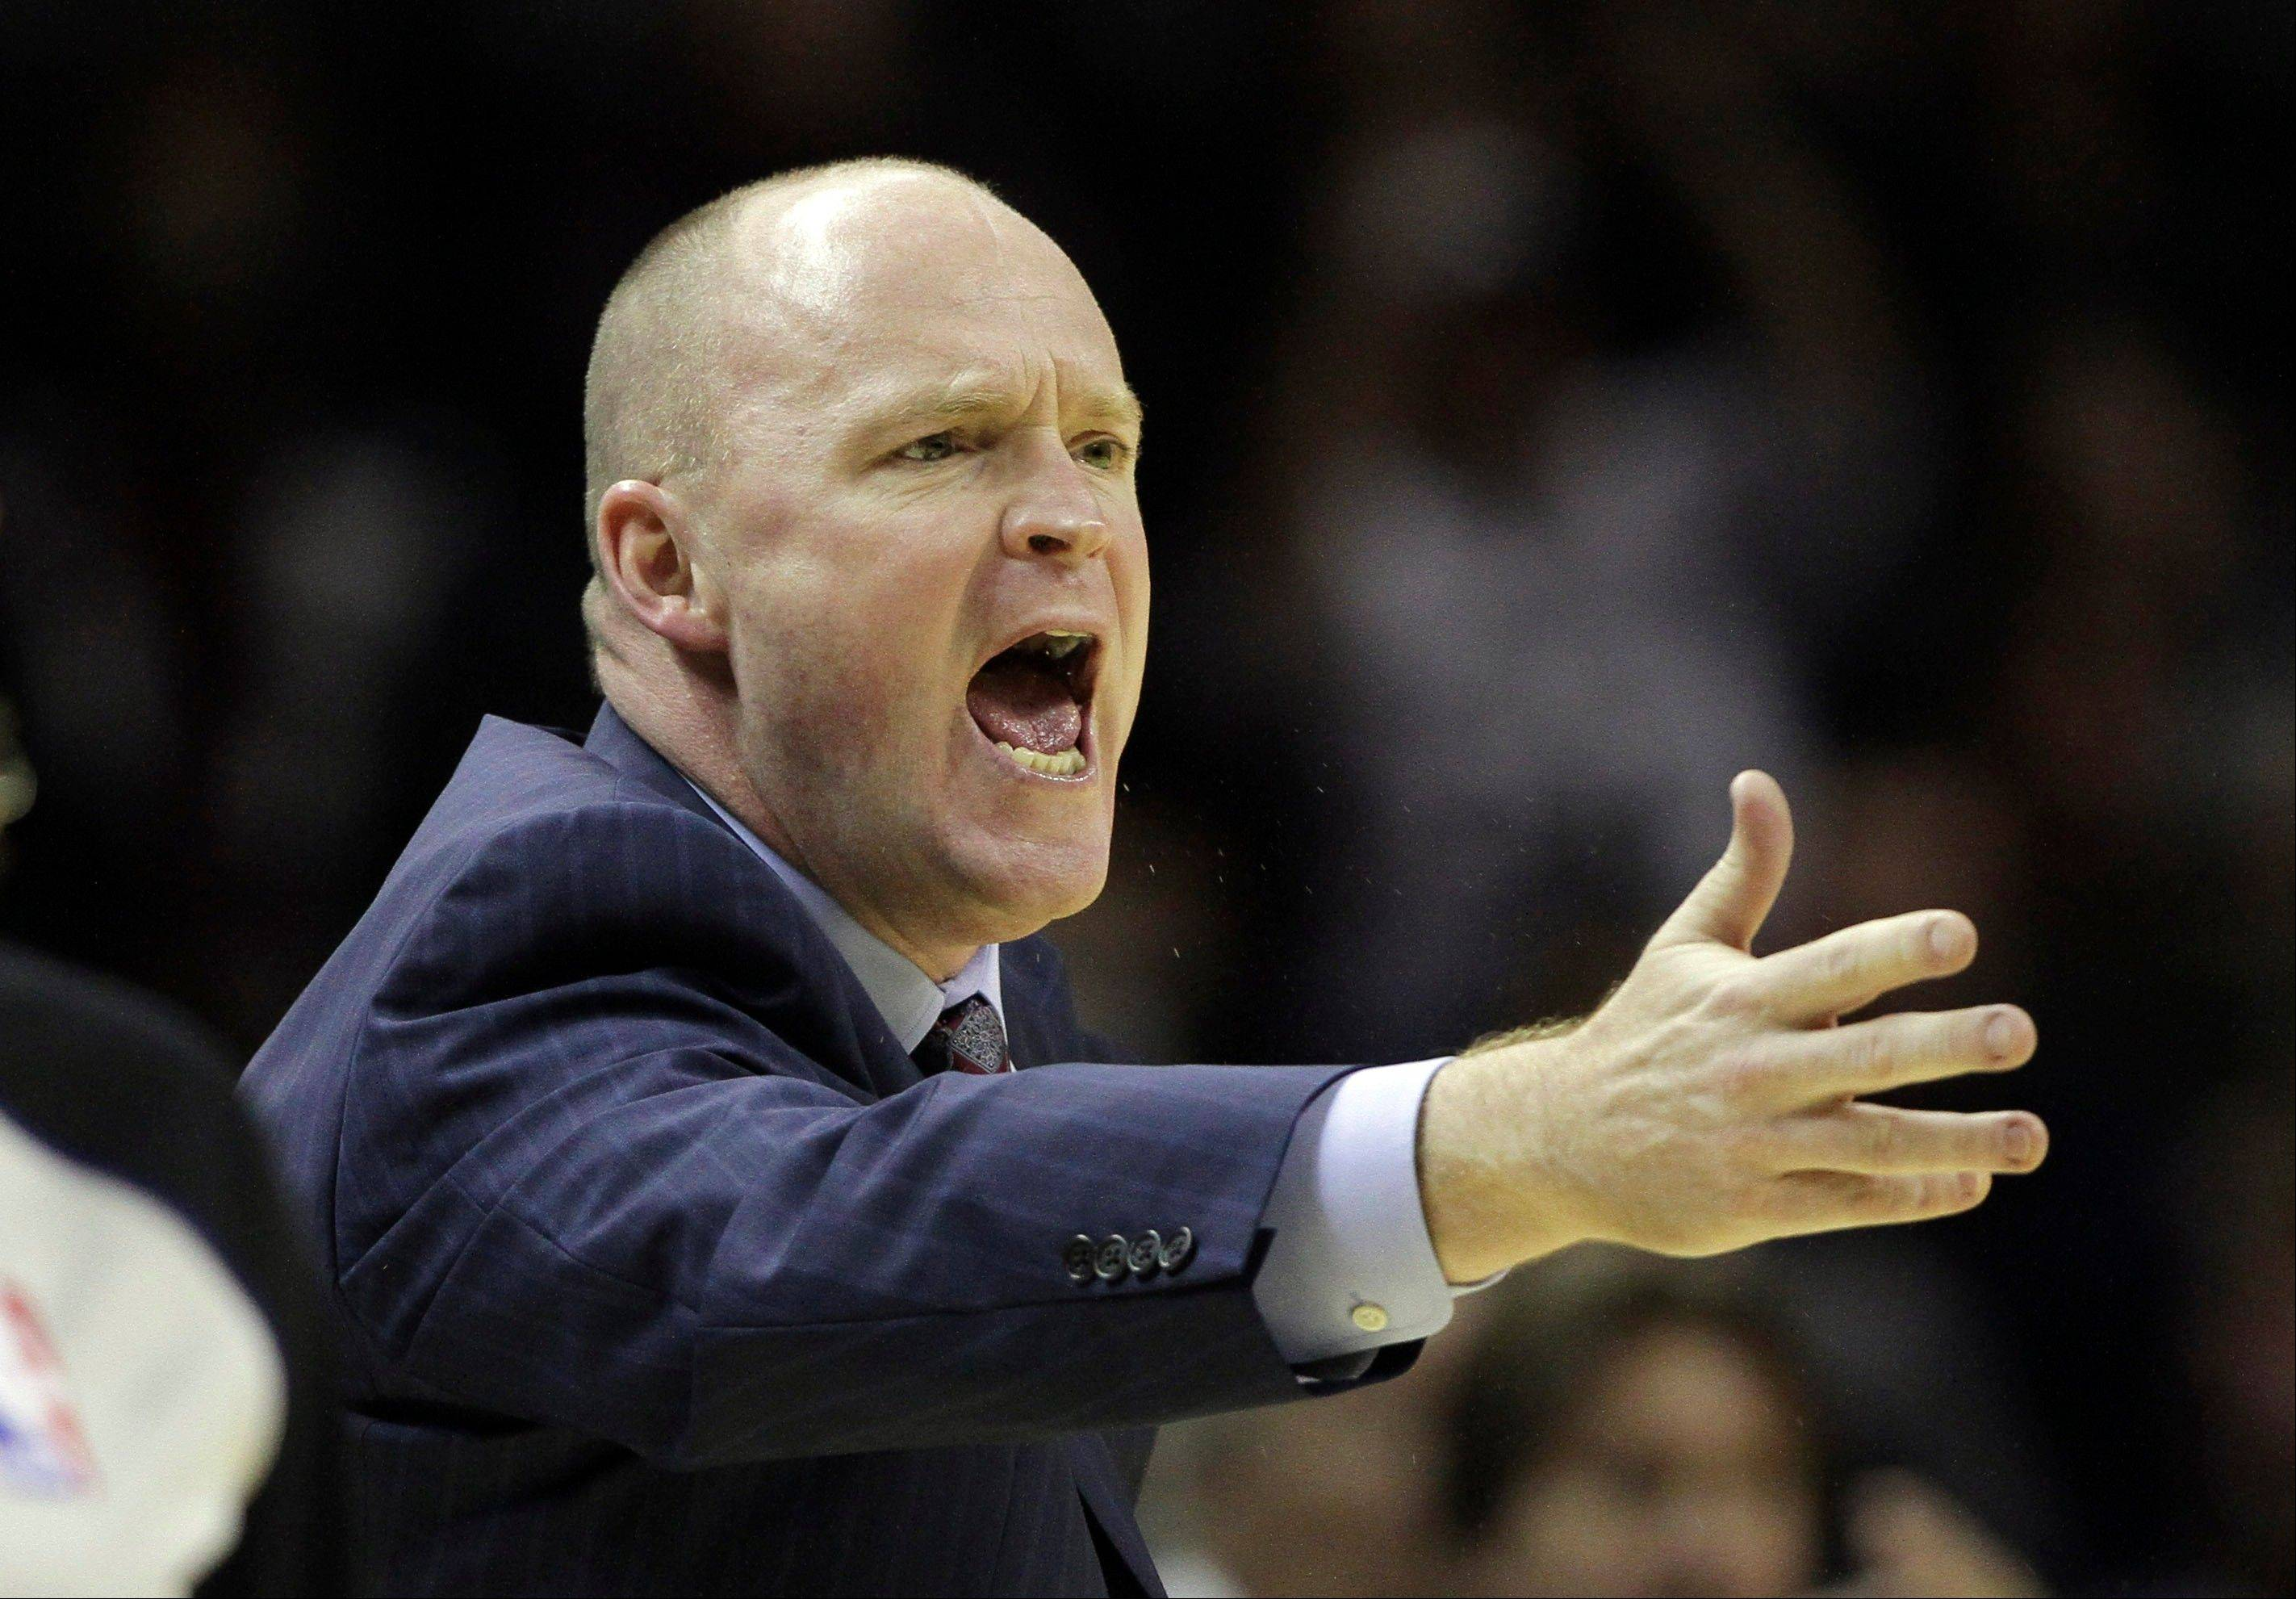 FILE - Milwaukee Buck head coach Scott Skiles argues a call during the fourth quarter of an NBA basketball game against the San Antonio Spurs, in this Dec. 5, 2012 file photo taken in San Antonio. Skiles and the Milwaukee Bucks have allegedly decided to part ways after just over four seasons together, ending a working relationship that seemed to been teetering on the brink for quite some time according to a person with knowledge of the move.